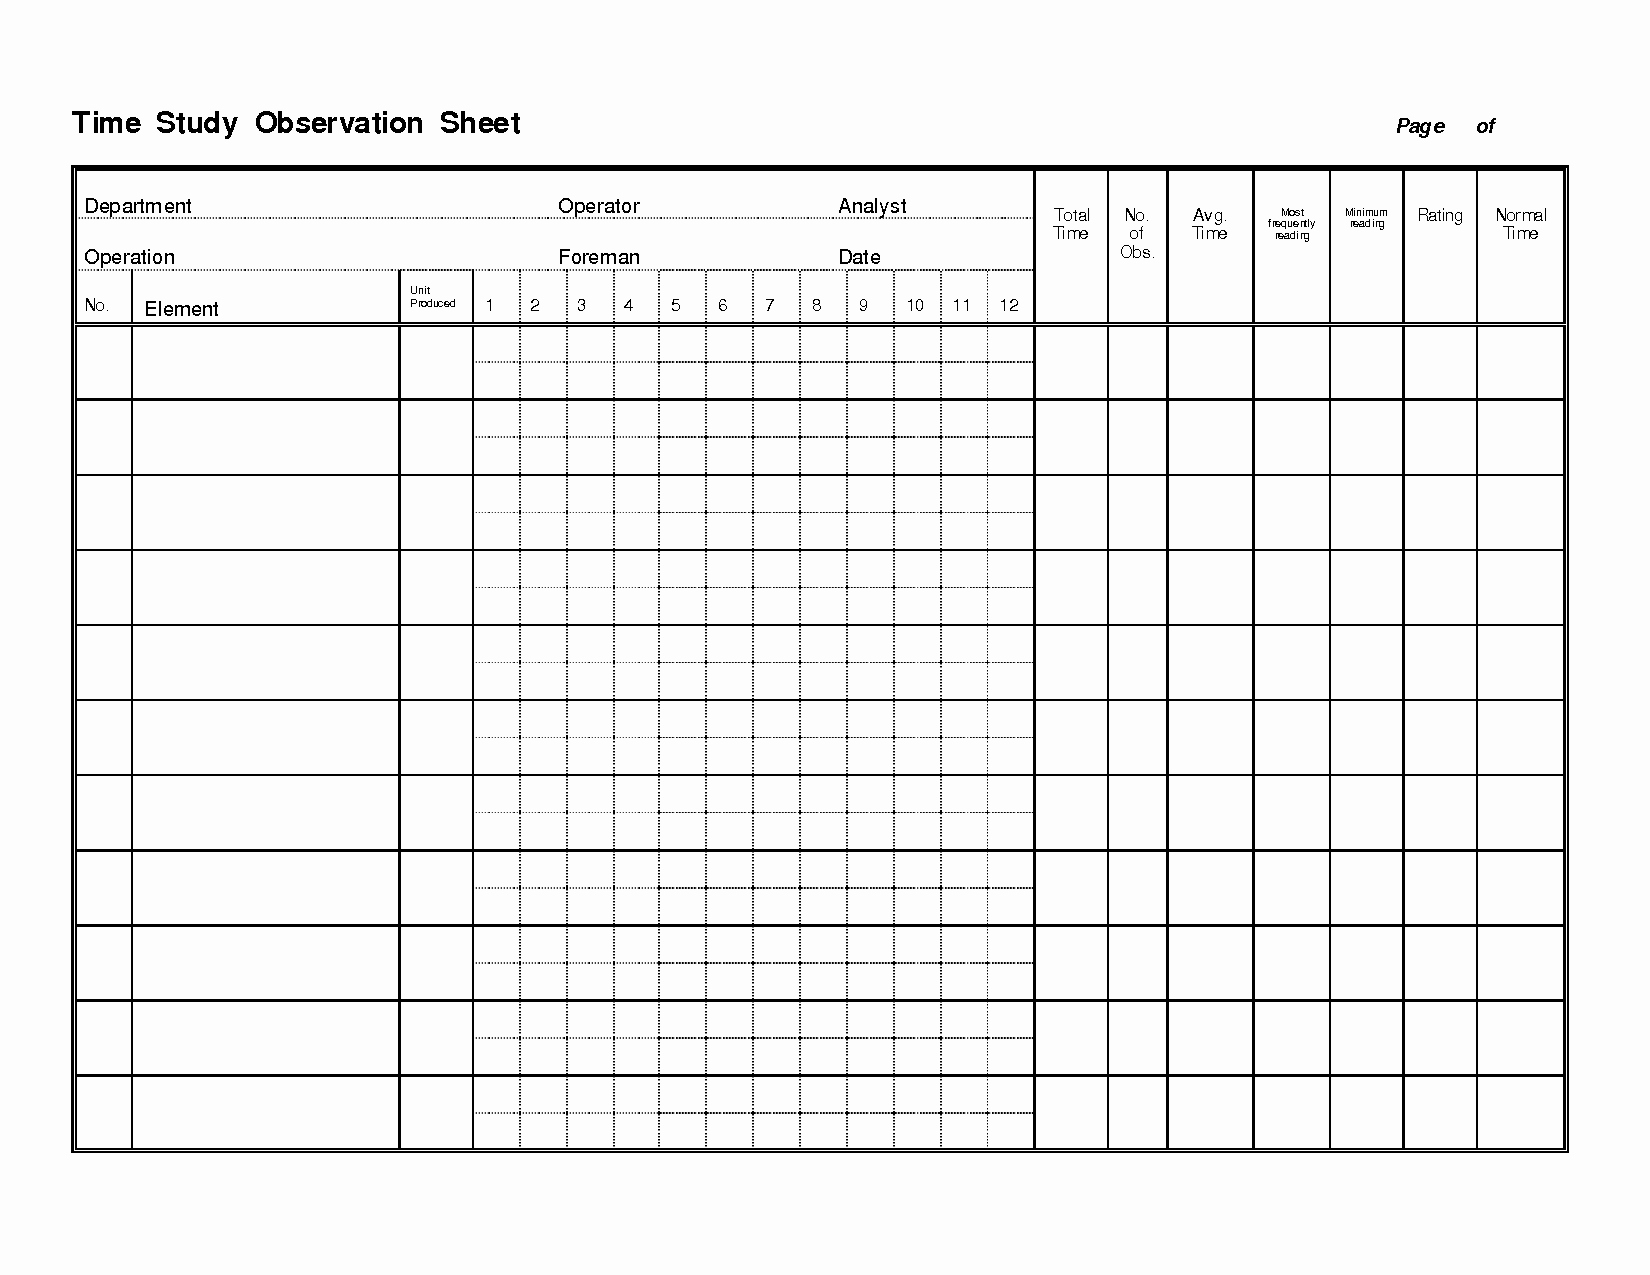 Time Study Template Excel Best Of Time Study Template